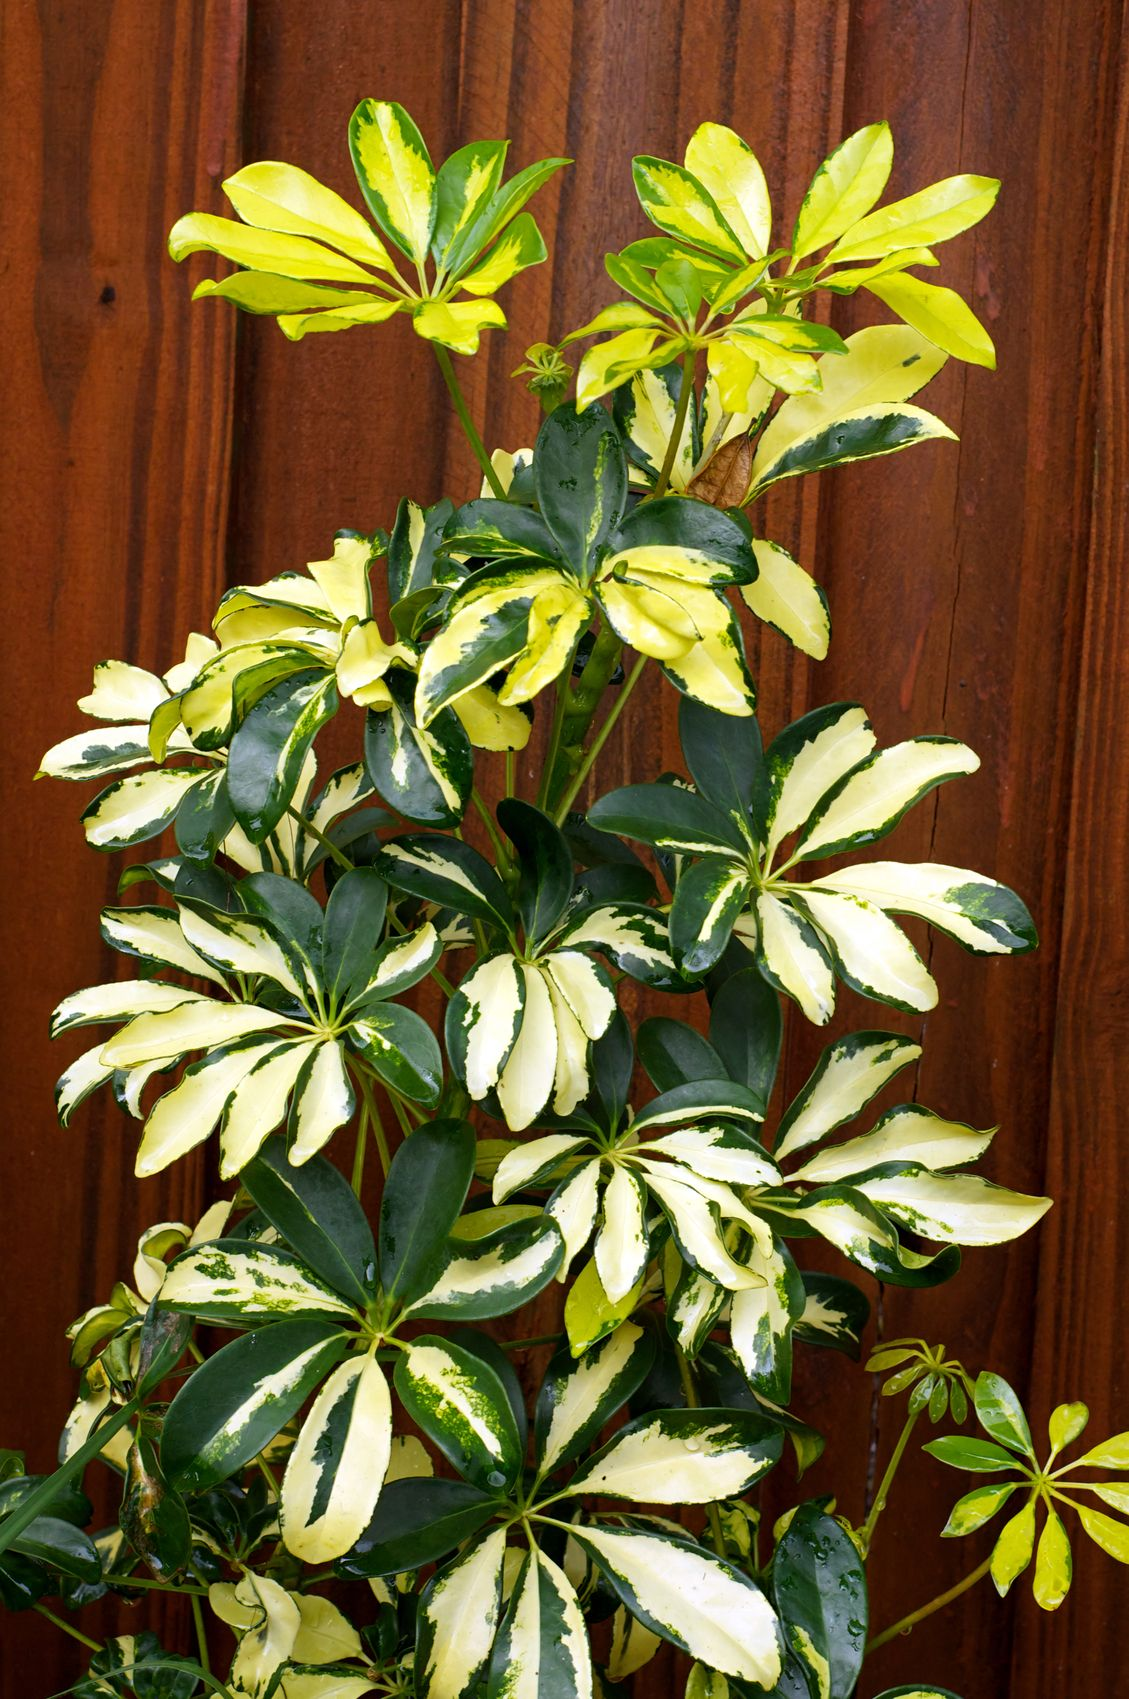 Schefflera Plant Pruning: Tips On Cutting Back Schefflera ...